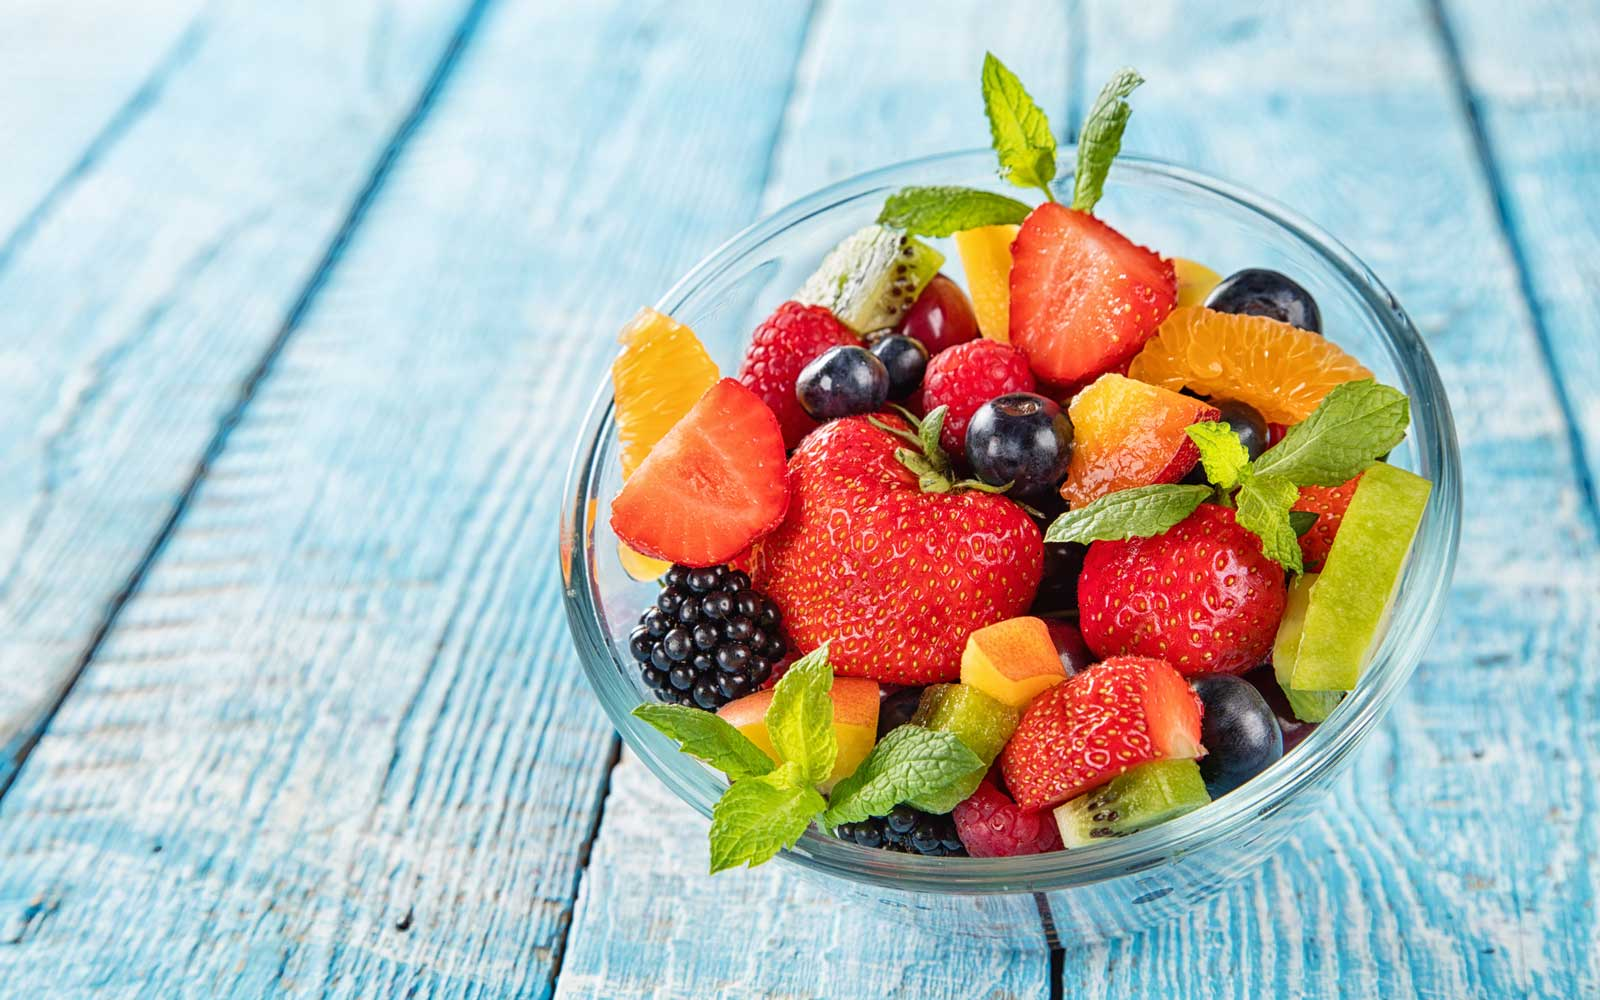 Is Fruit Actually Bad for You?